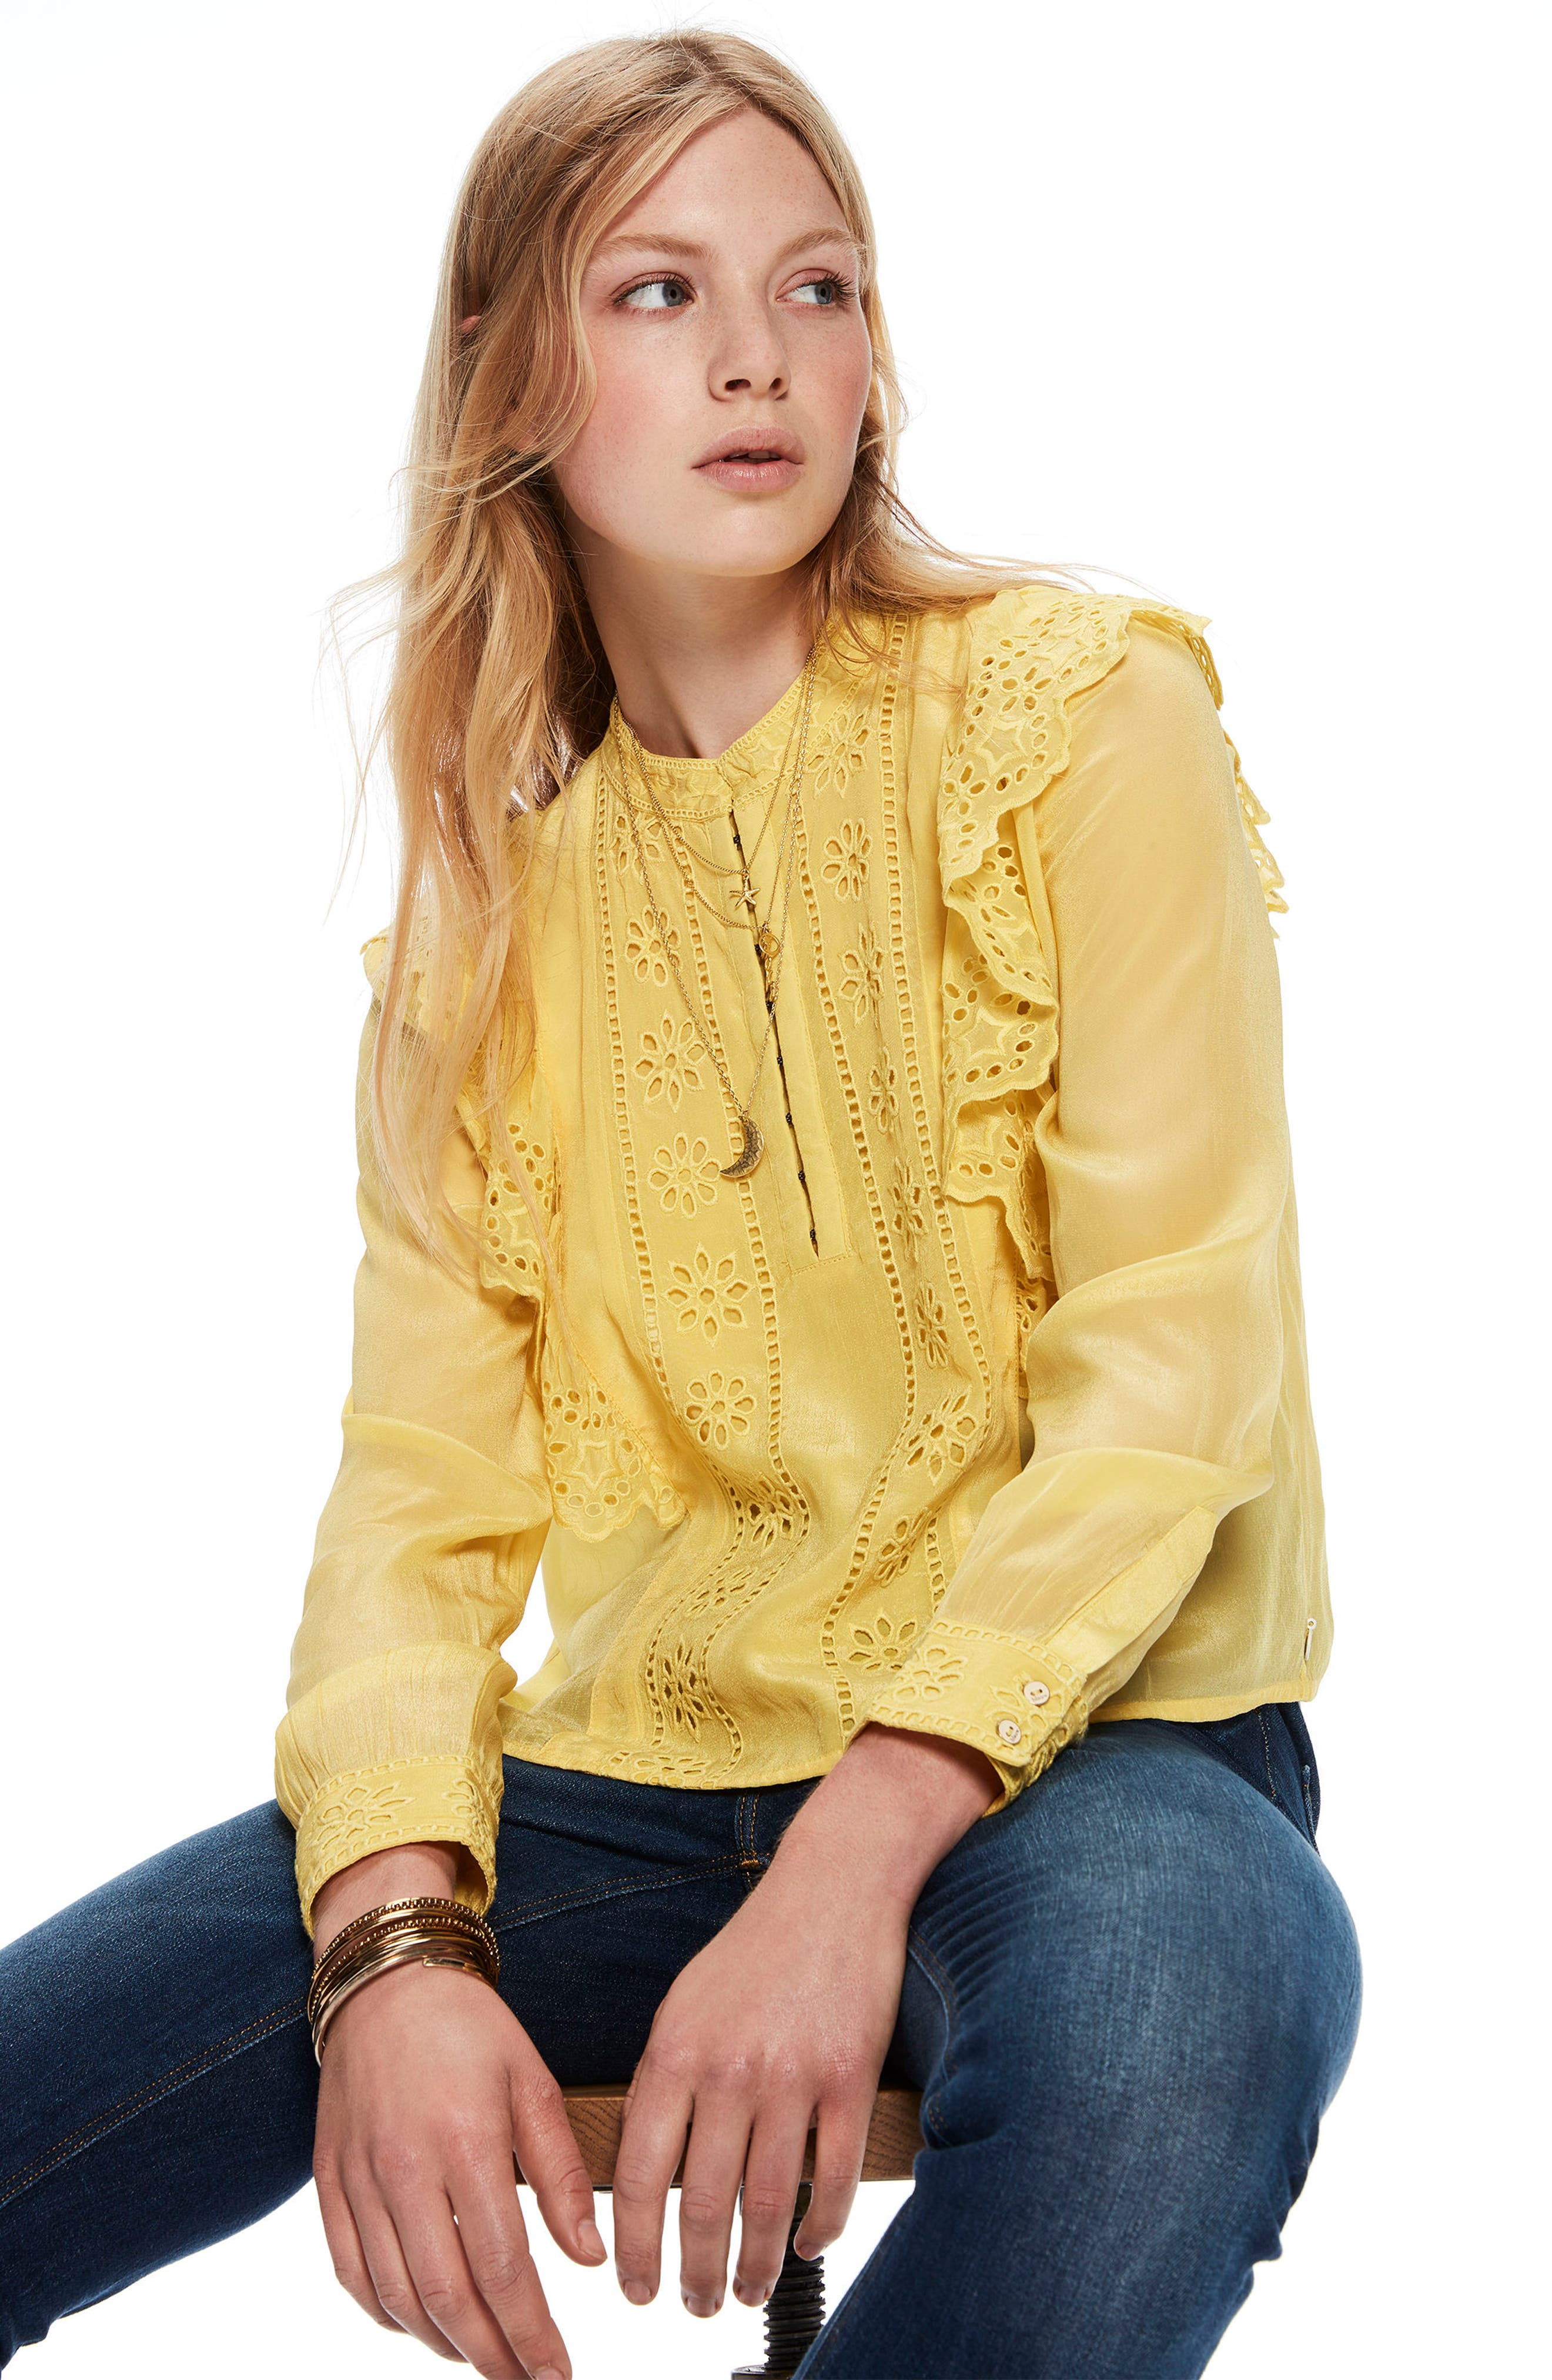 Ruffle Embroidered Eyelet Top,                             Alternate thumbnail 4, color,                             2118 Cheddar